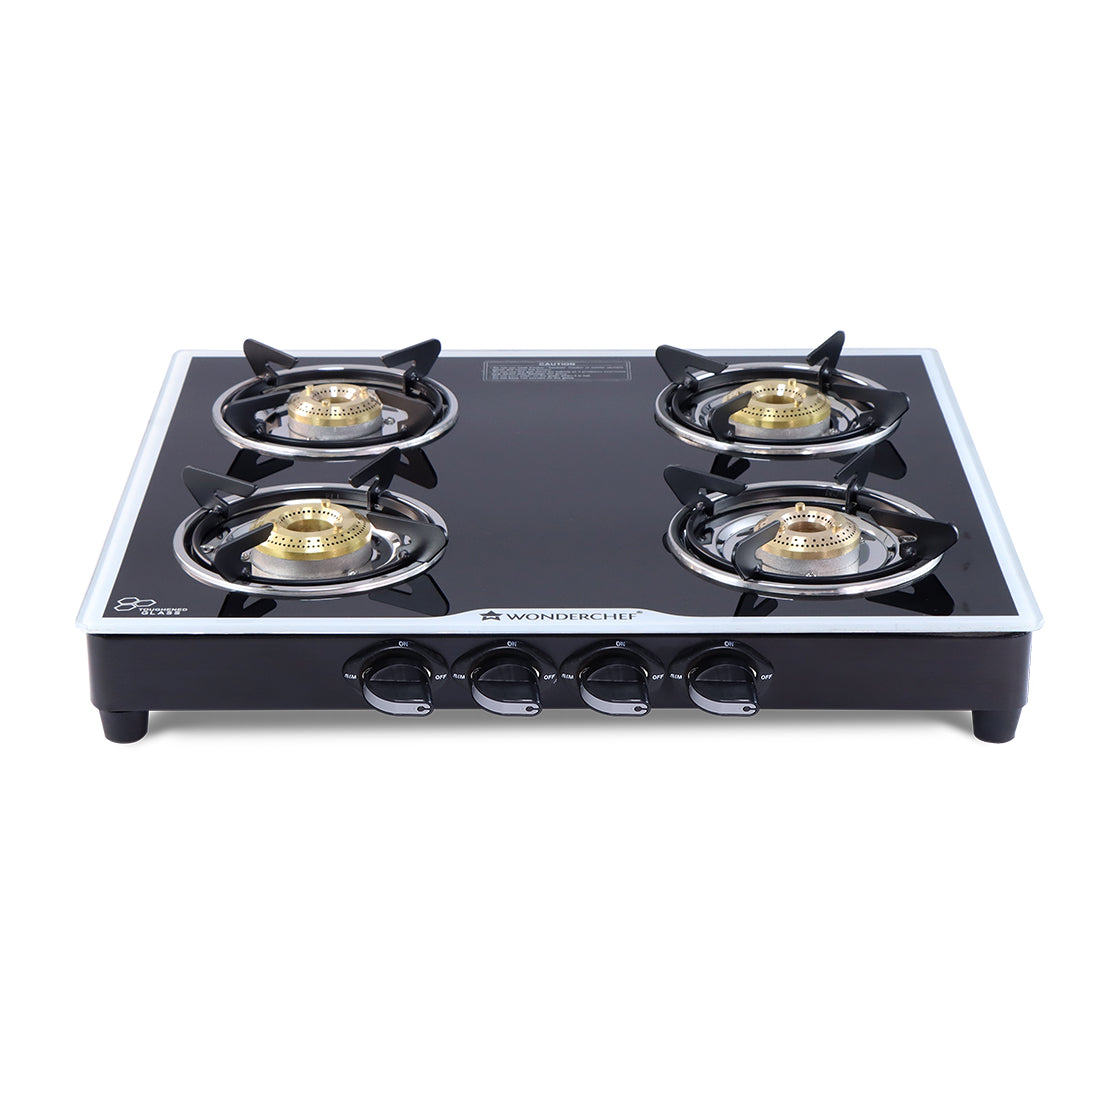 Platinum 4 Burner Glass Cooktop, Black 6mm Toughened Glass with 1 Year Warranty, Ergonomic Knobs, Stainless Steel Drip Tray, Manual Ignition Gas Stove